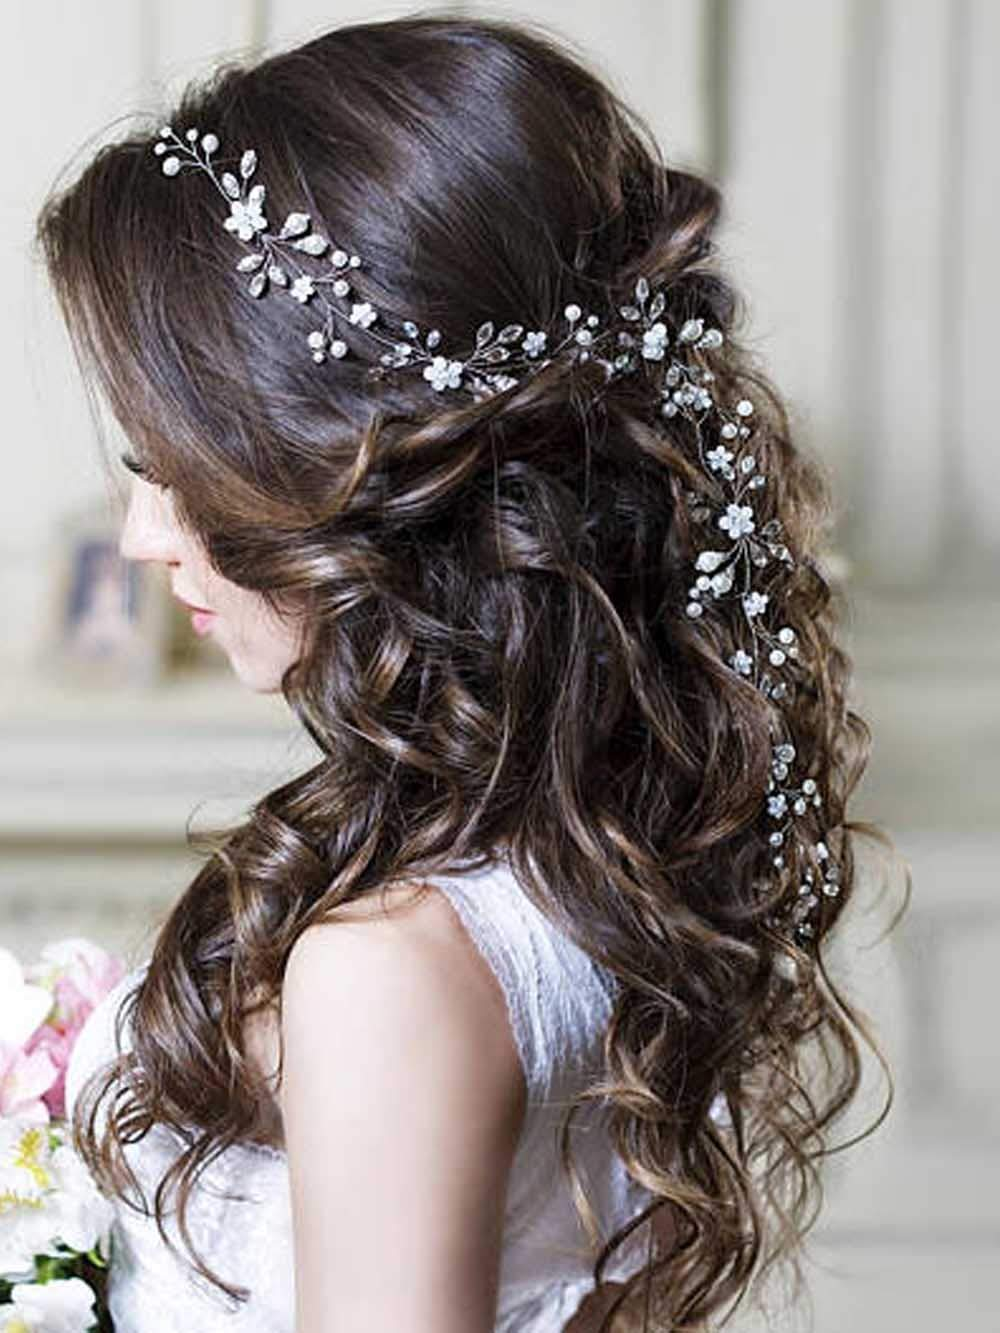 Unicra Silver Wedding Pearl Flower Hair Vine Wedding Bridal Headpiece Accessories for Brides and Bridesmaids 23.6 Inches